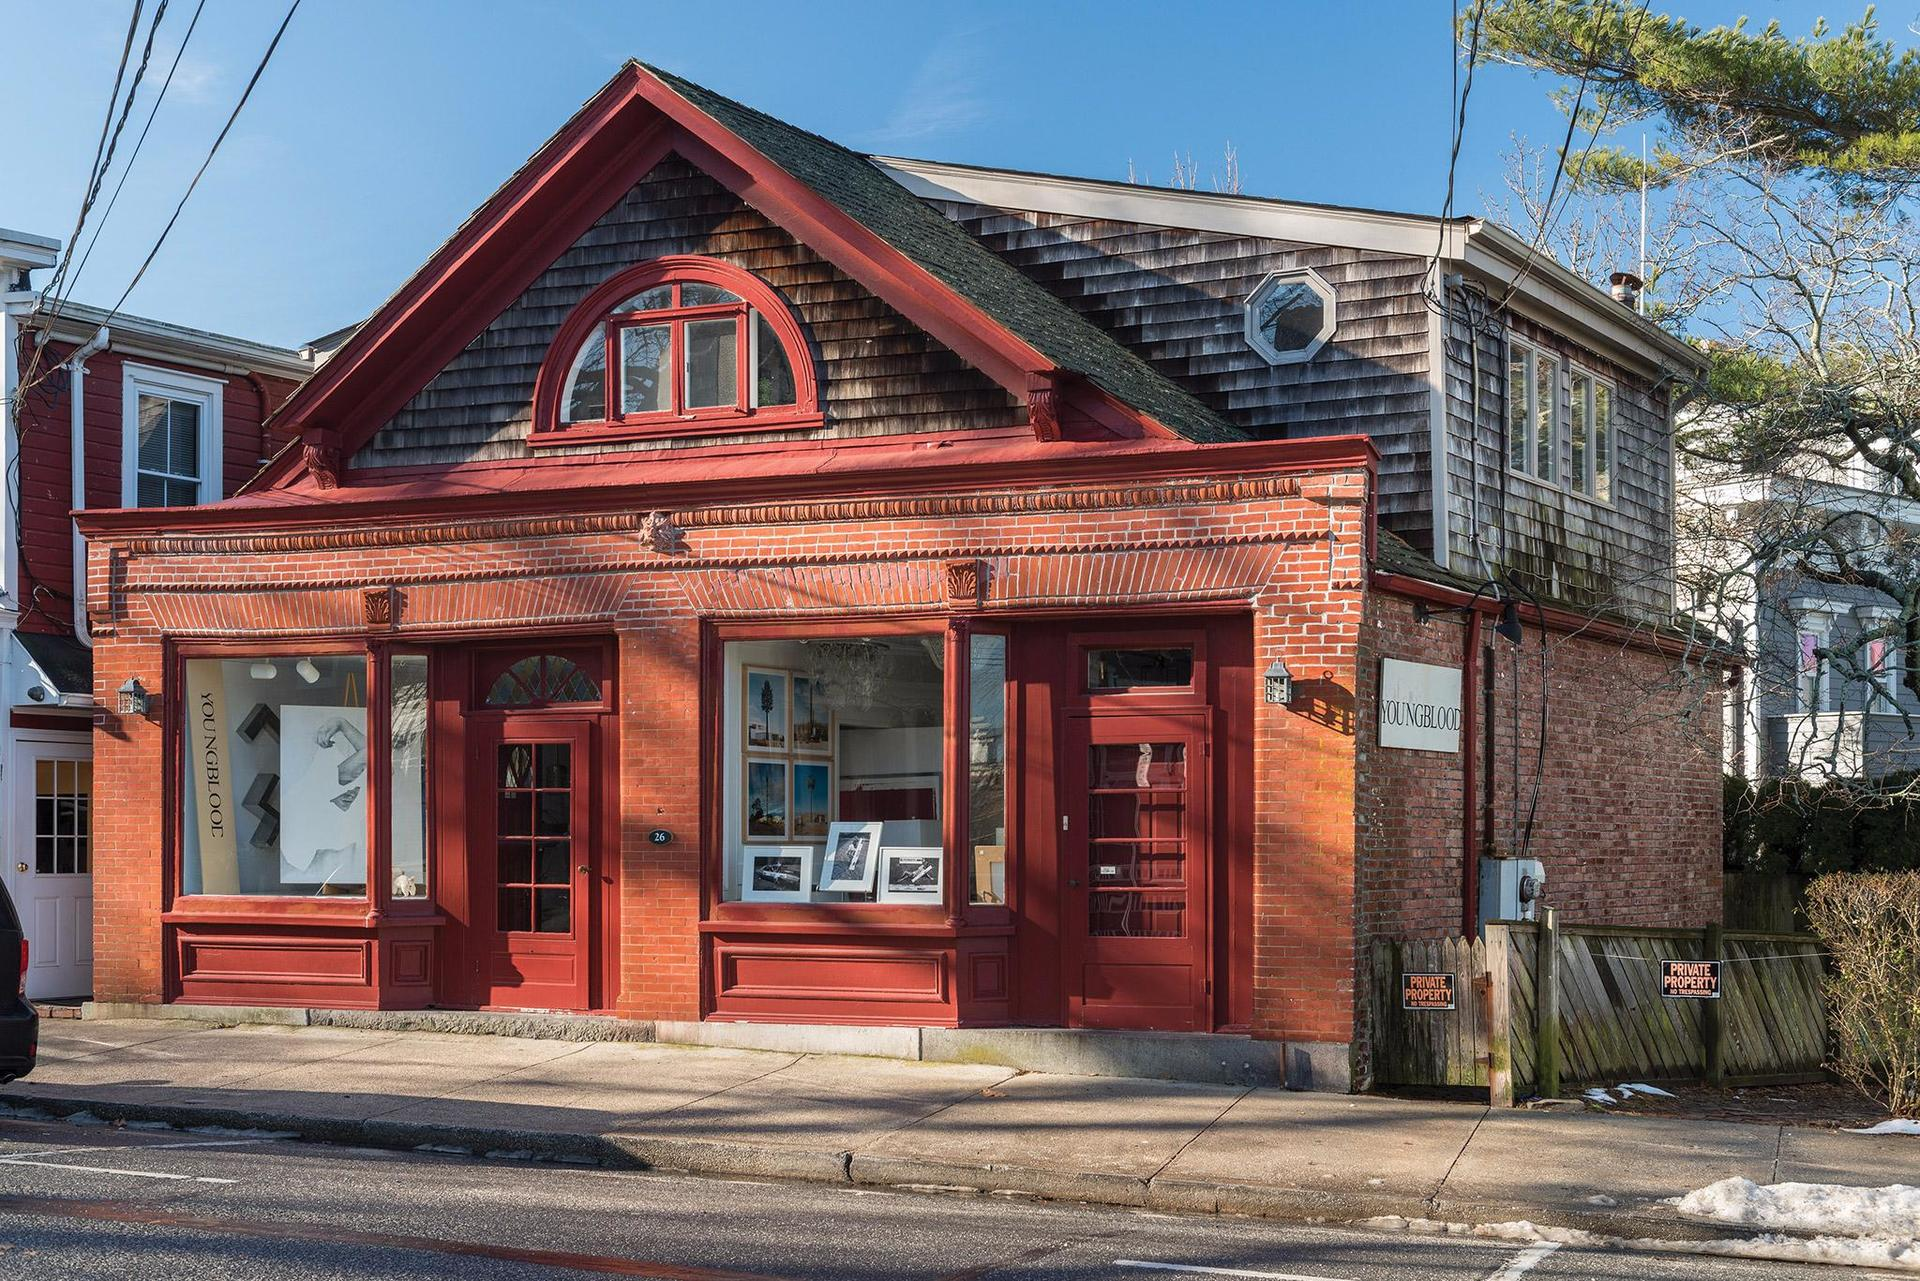 Commercial for Sale at Sag Harbor Village Commercial Opportunity 26 Madison Street, Sag Harbor, New York